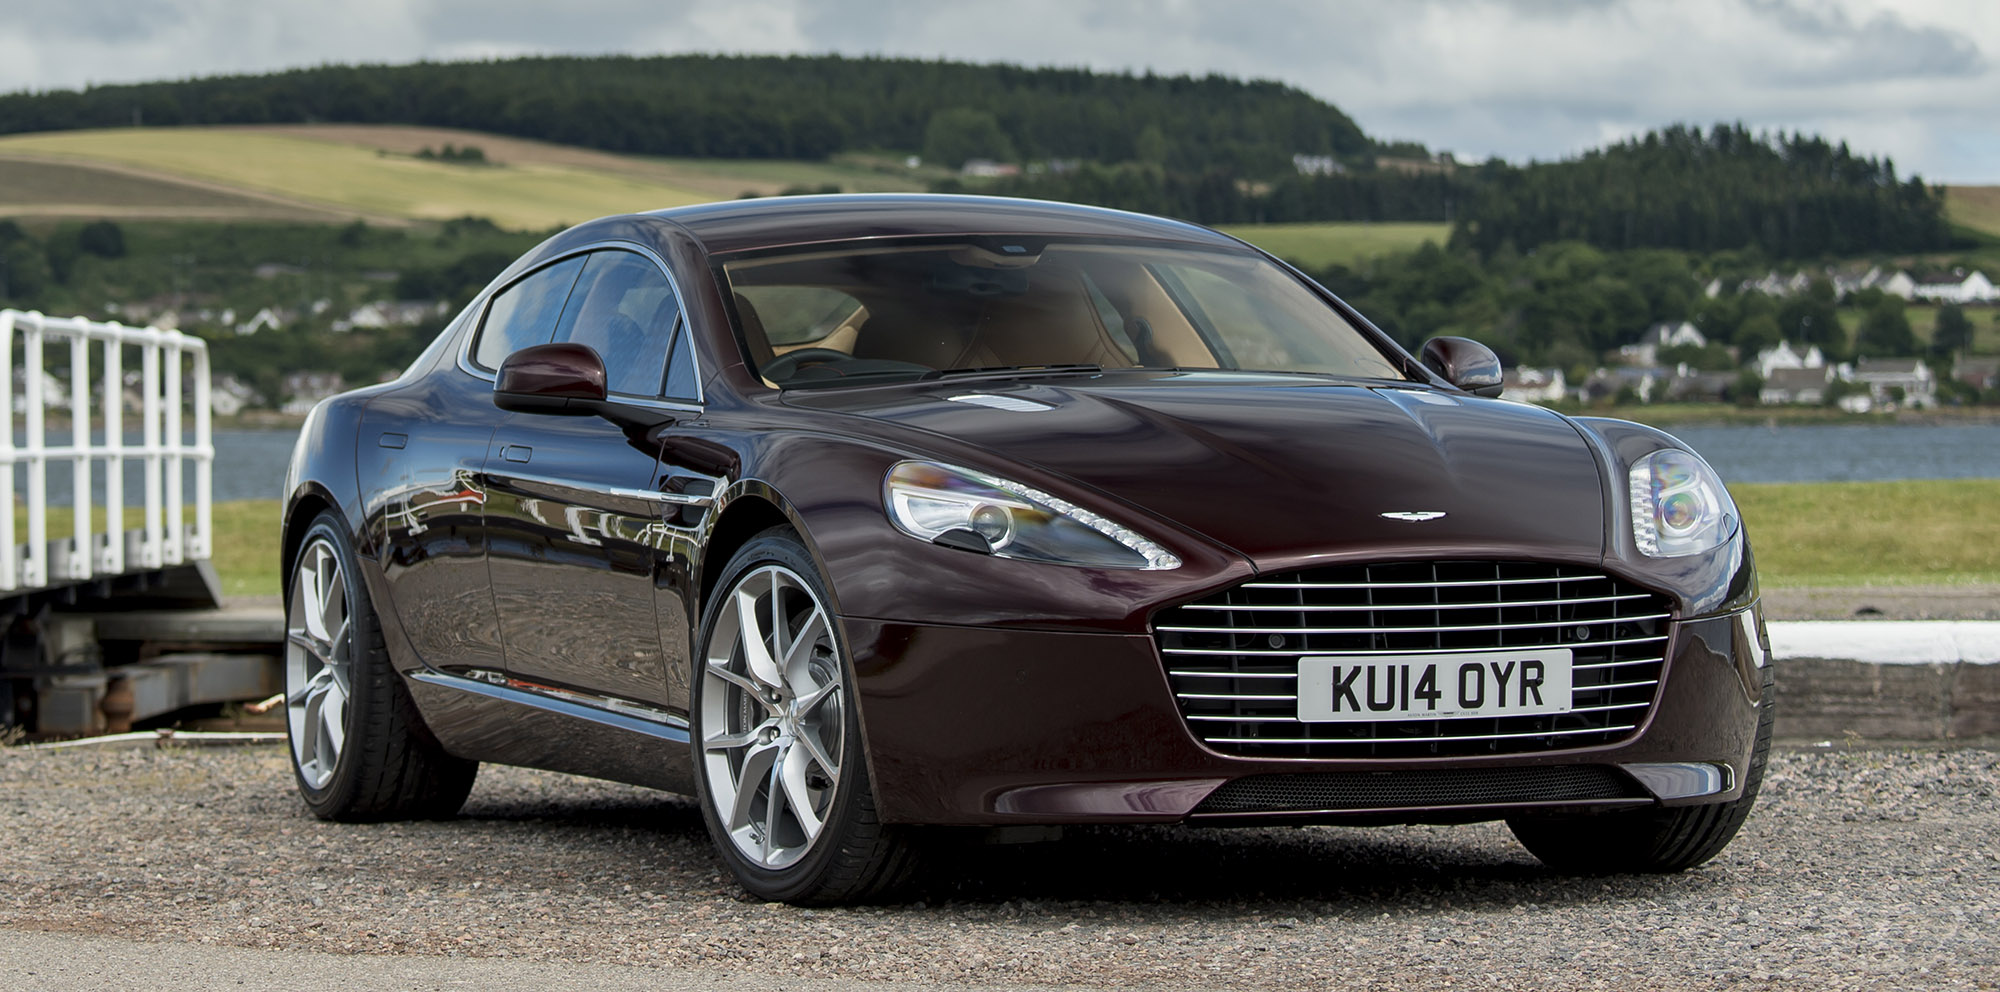 aston martin rapide to be replaced by next gen lagonda sedan new dbx crossover photos 1 of 3. Black Bedroom Furniture Sets. Home Design Ideas